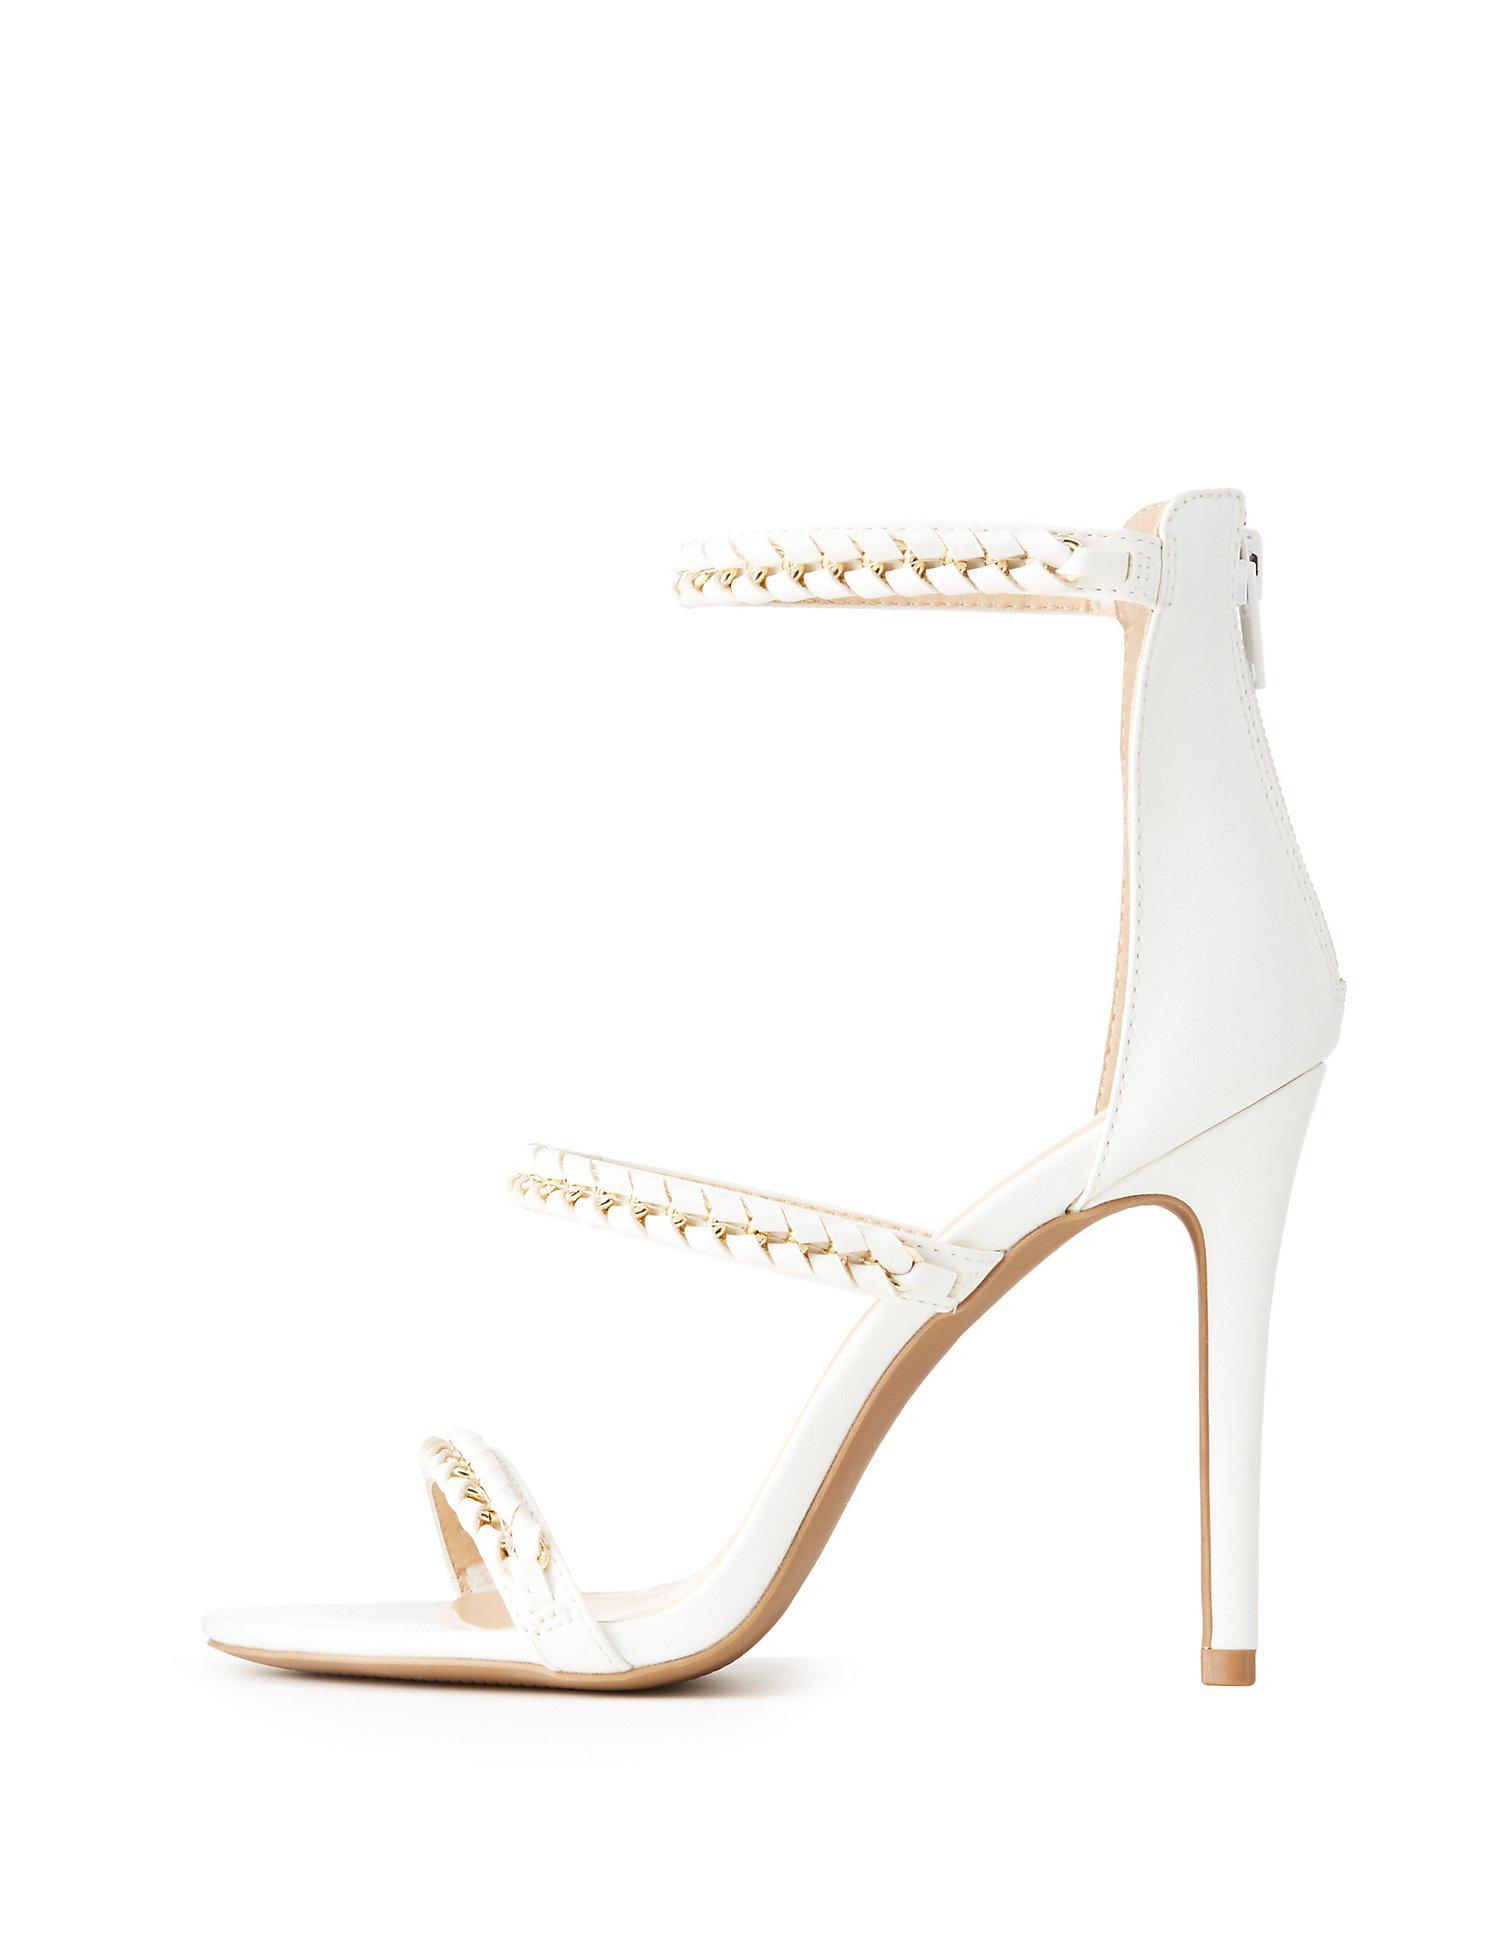 16317a192a4 Lyst - Charlotte Russe Chain Braided Ankle Strap Dress Sandals in White